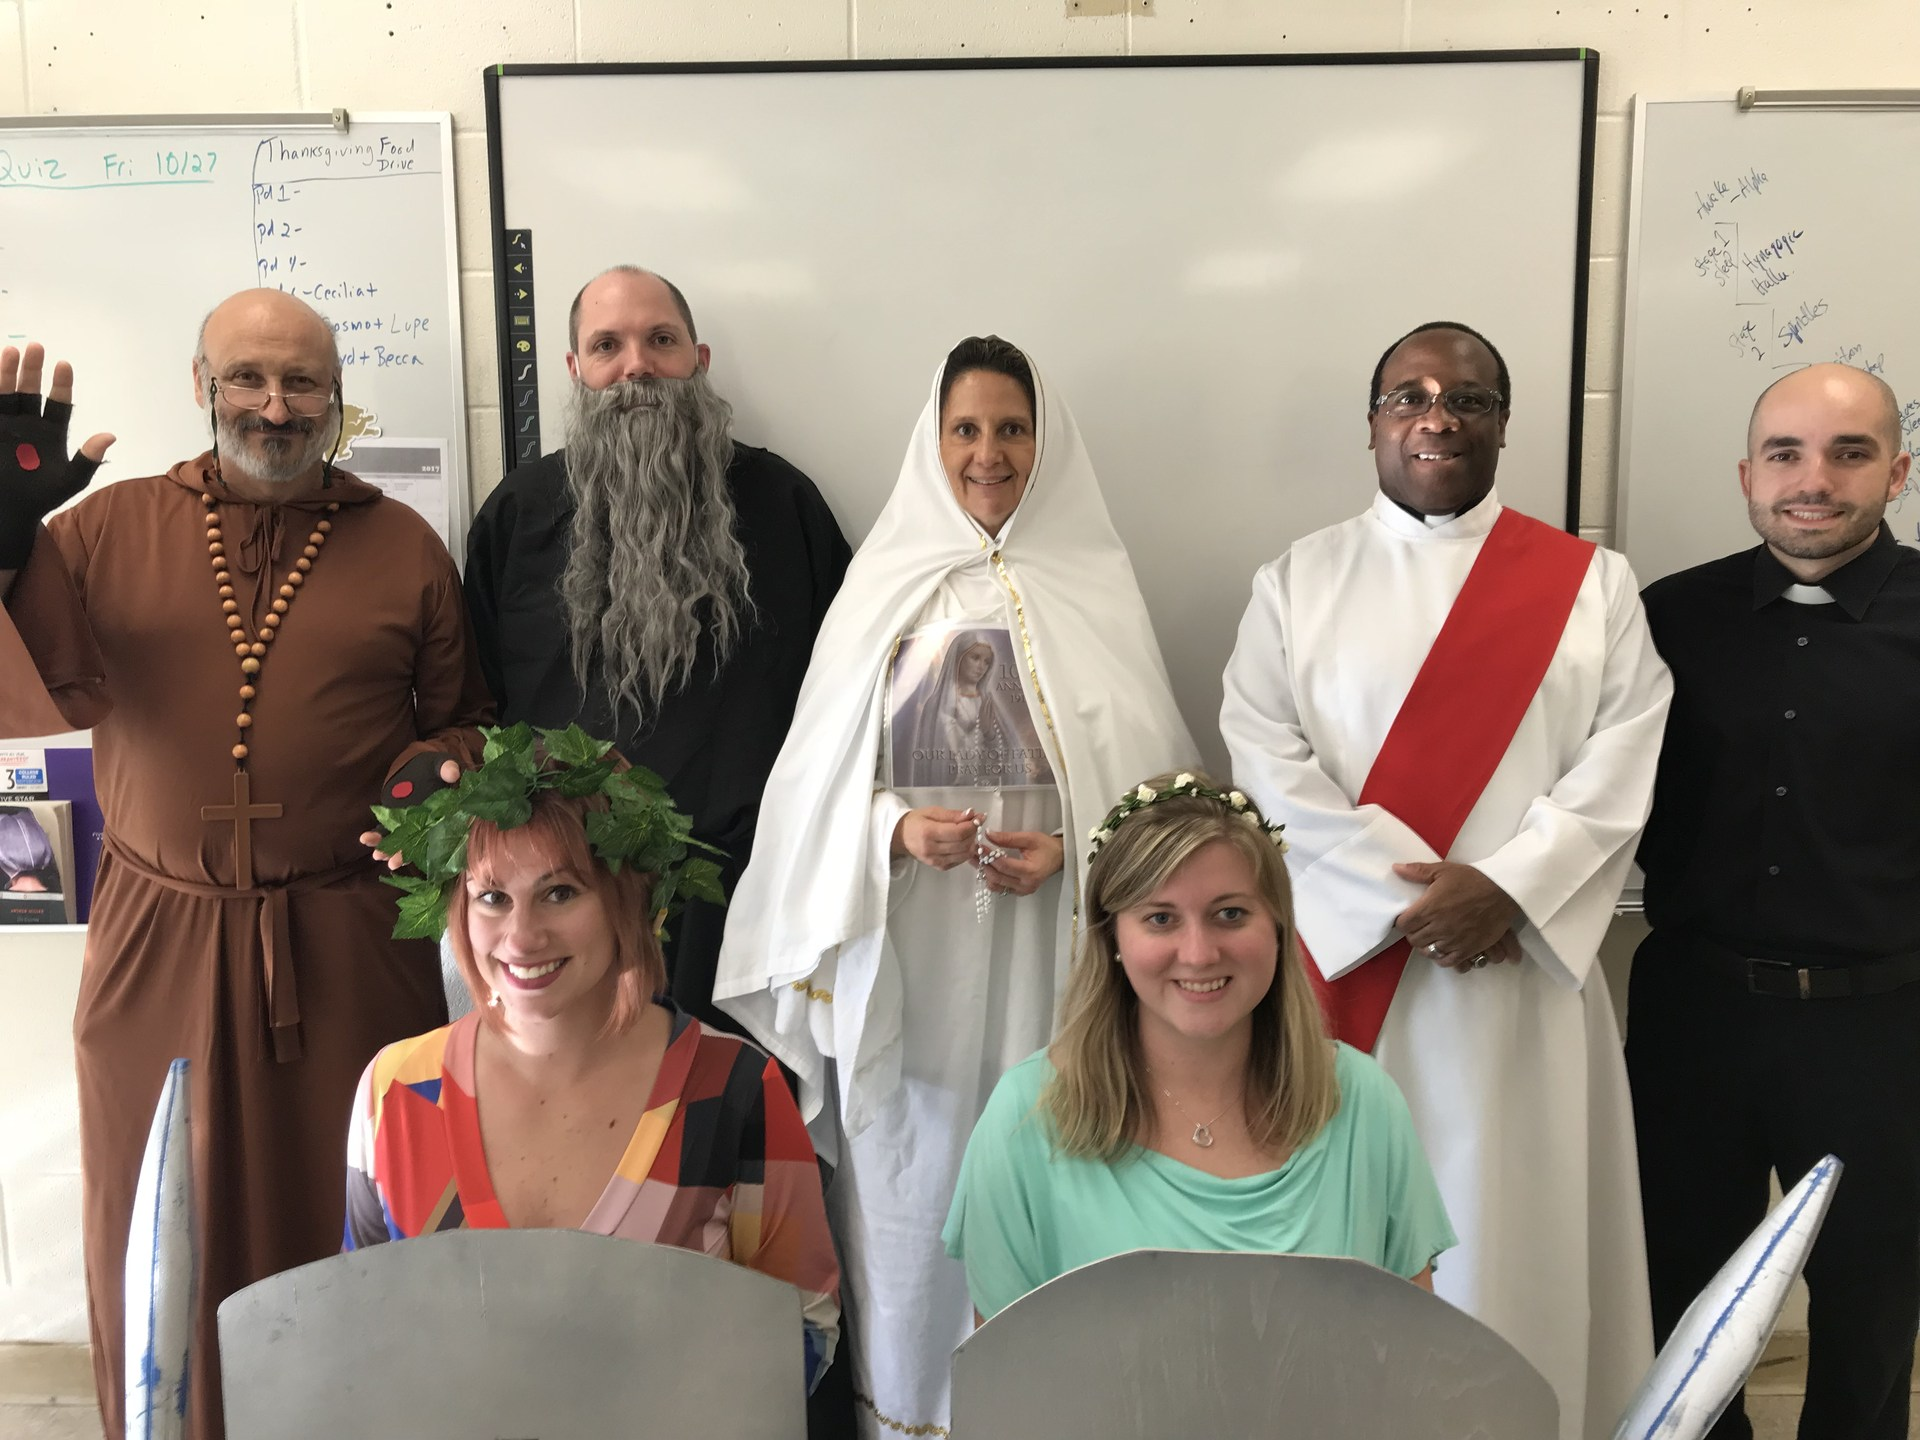 Theology staff posing in religious costumes for Halloween